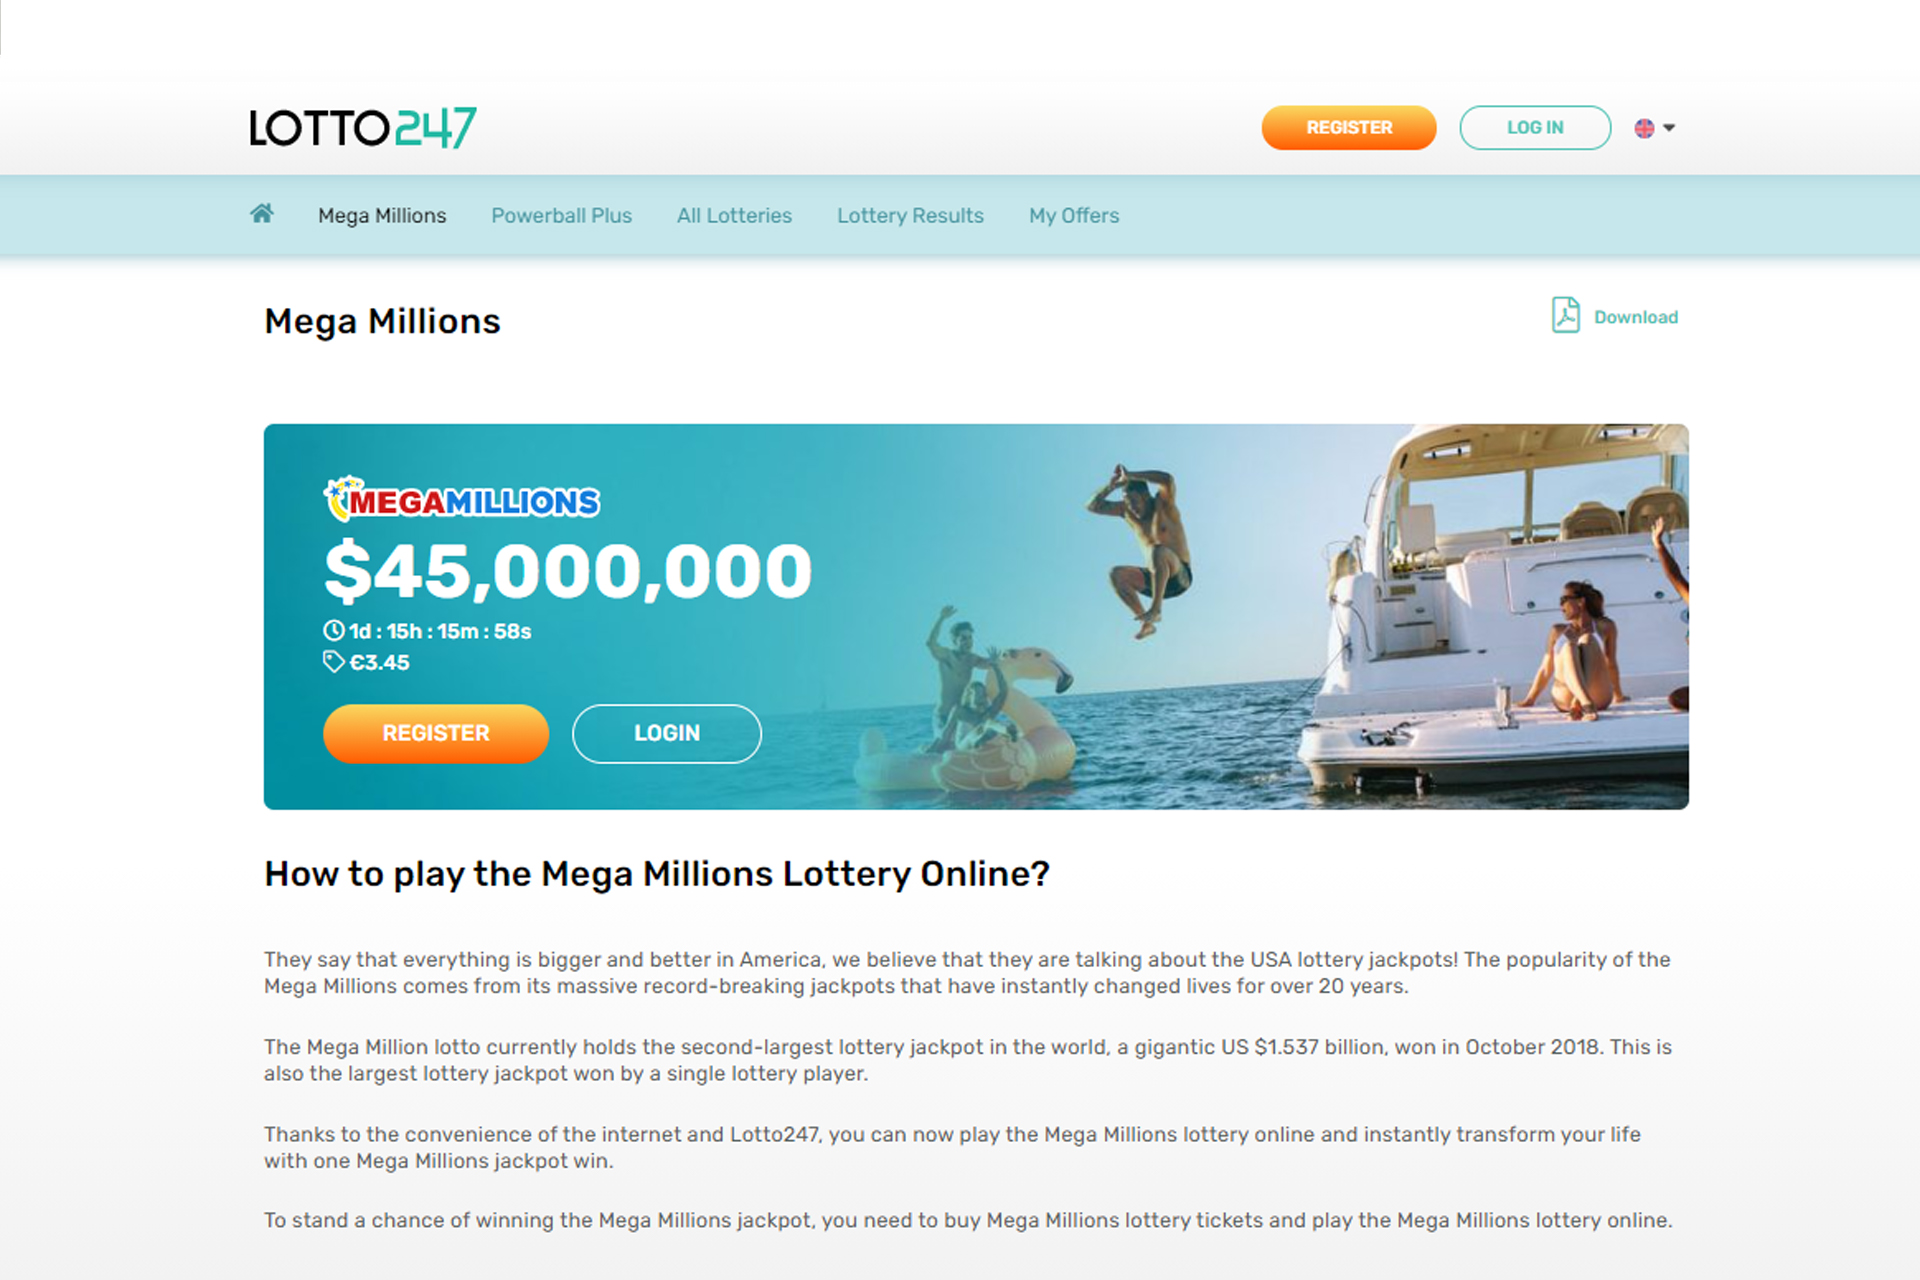 Players can participate in Mega Millions twice a week.